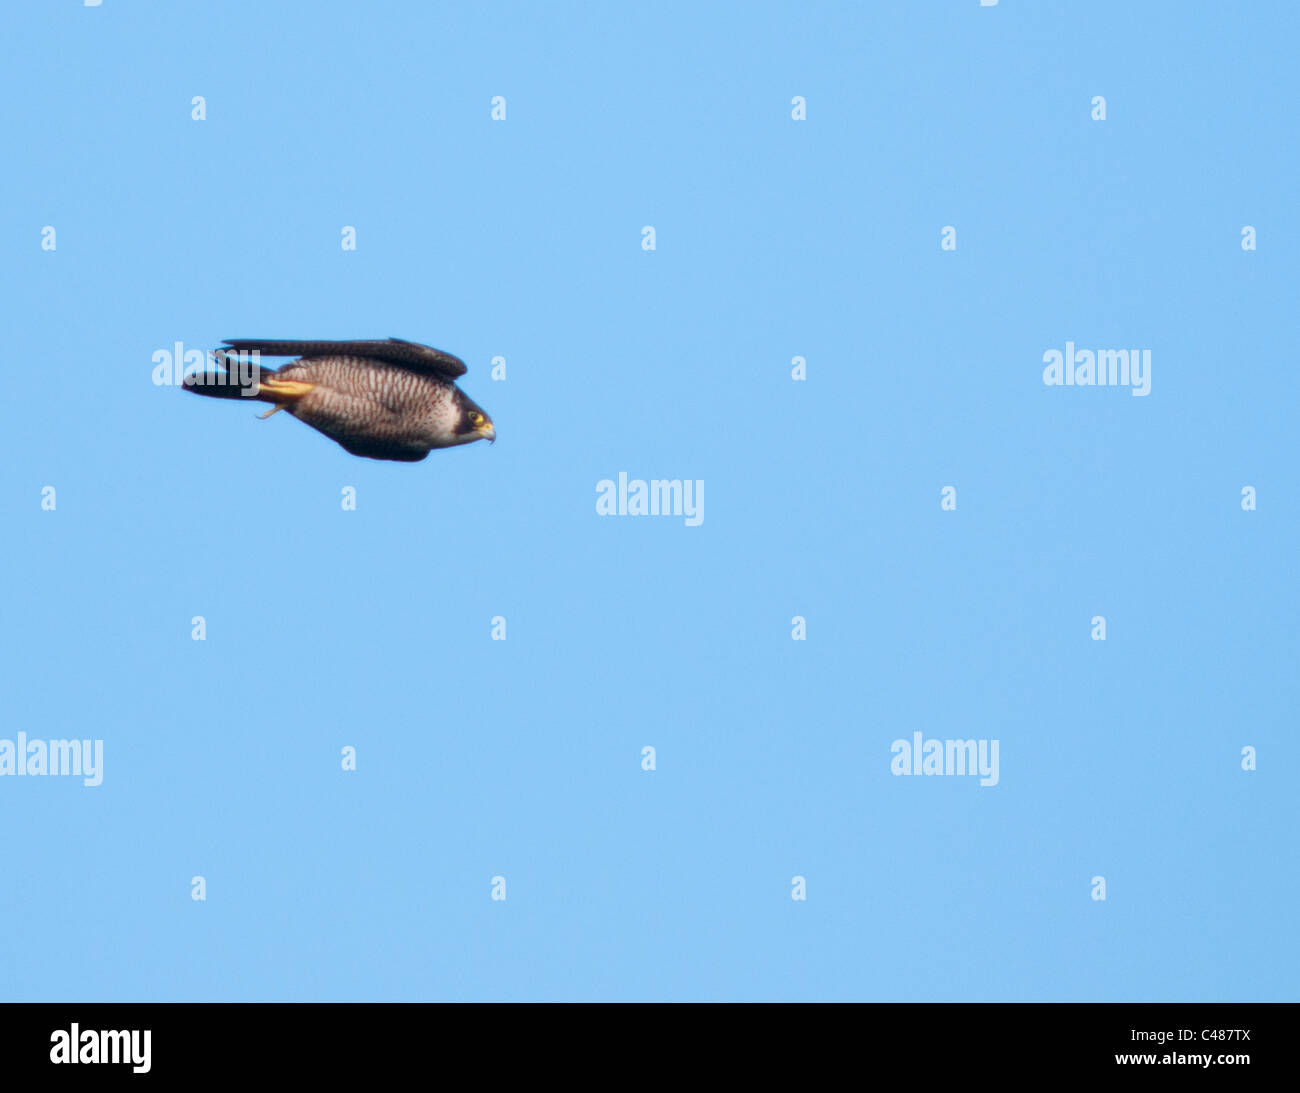 Peregrine Falcon (Falco peregrinus) in full speed stoop in pursuit of prey off the Pembrokeshire coast in Wales - Stock Image